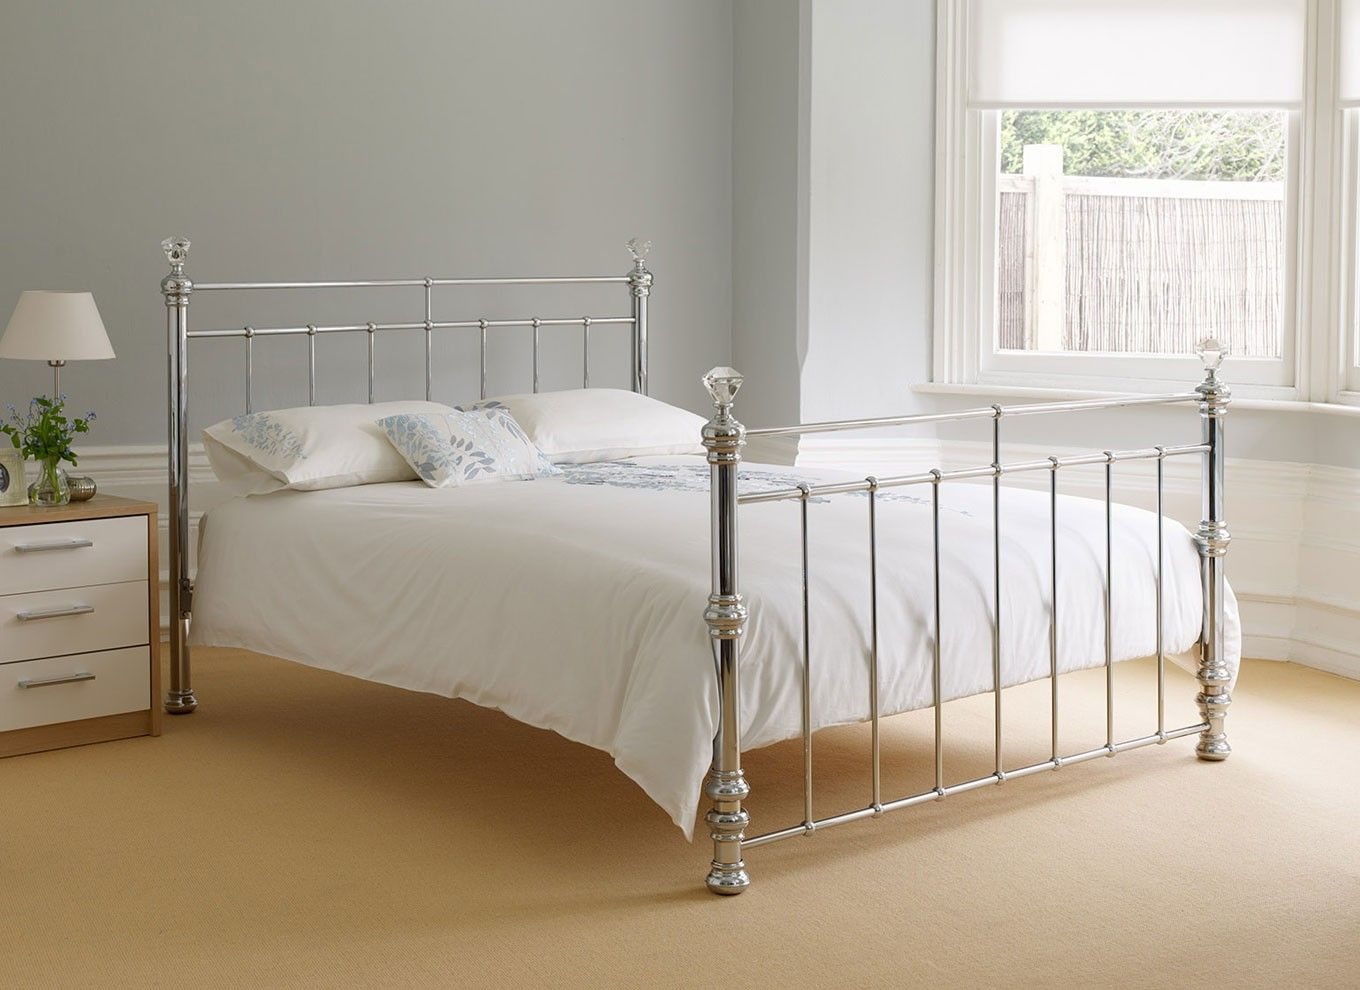 Crystal silver metal king size bed £400 Bed frame